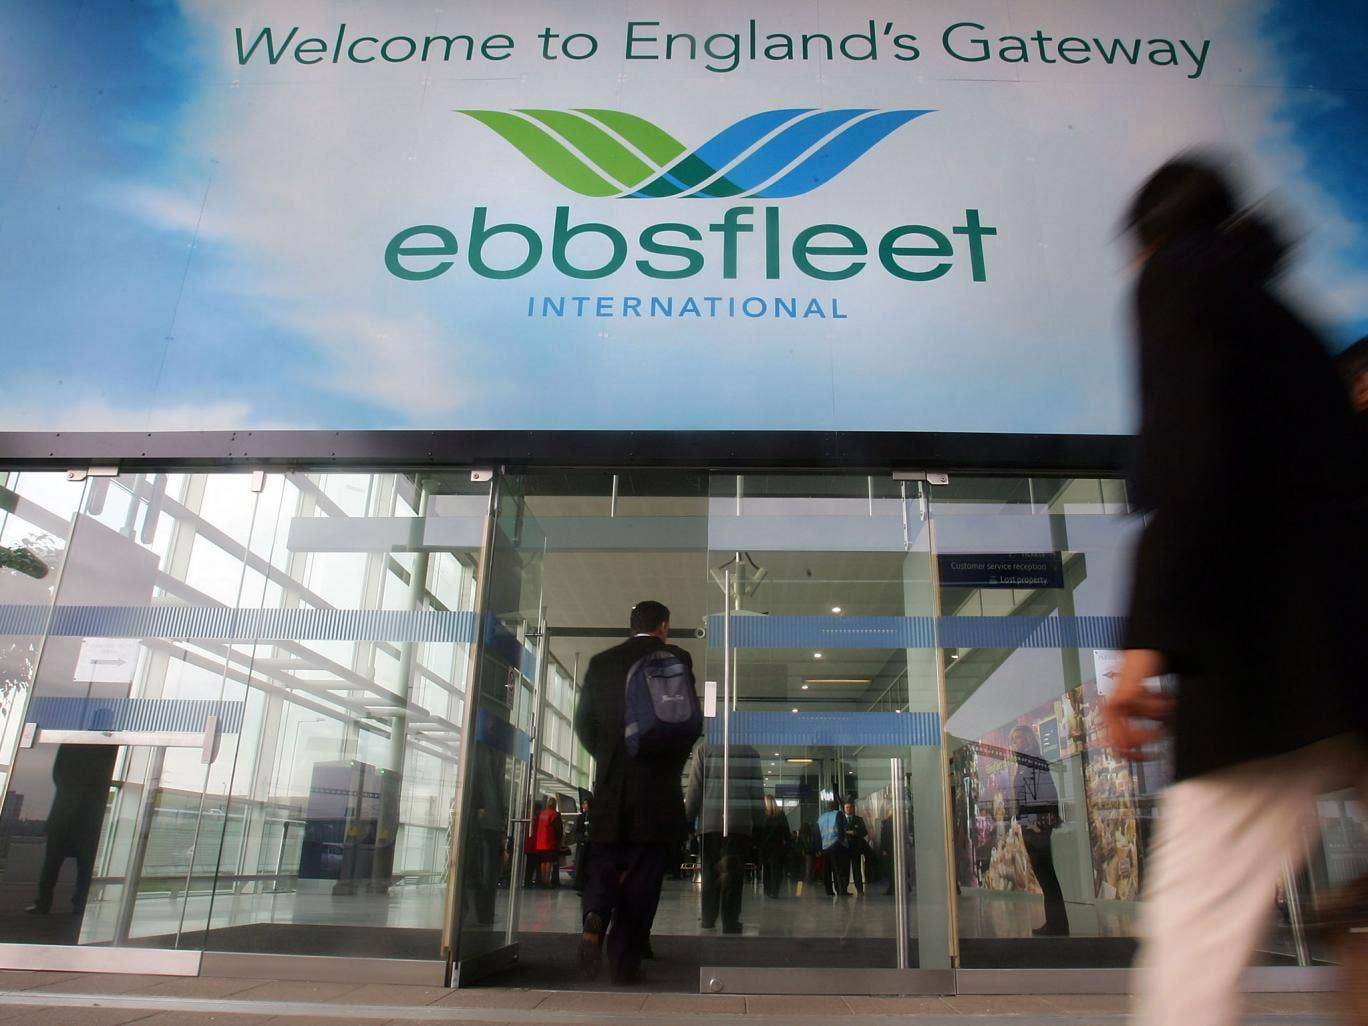 George Osborne announced a new 15,000-home garden city will be built at Ebbsfleet, Kent - which is already connected to the high-speed rail network